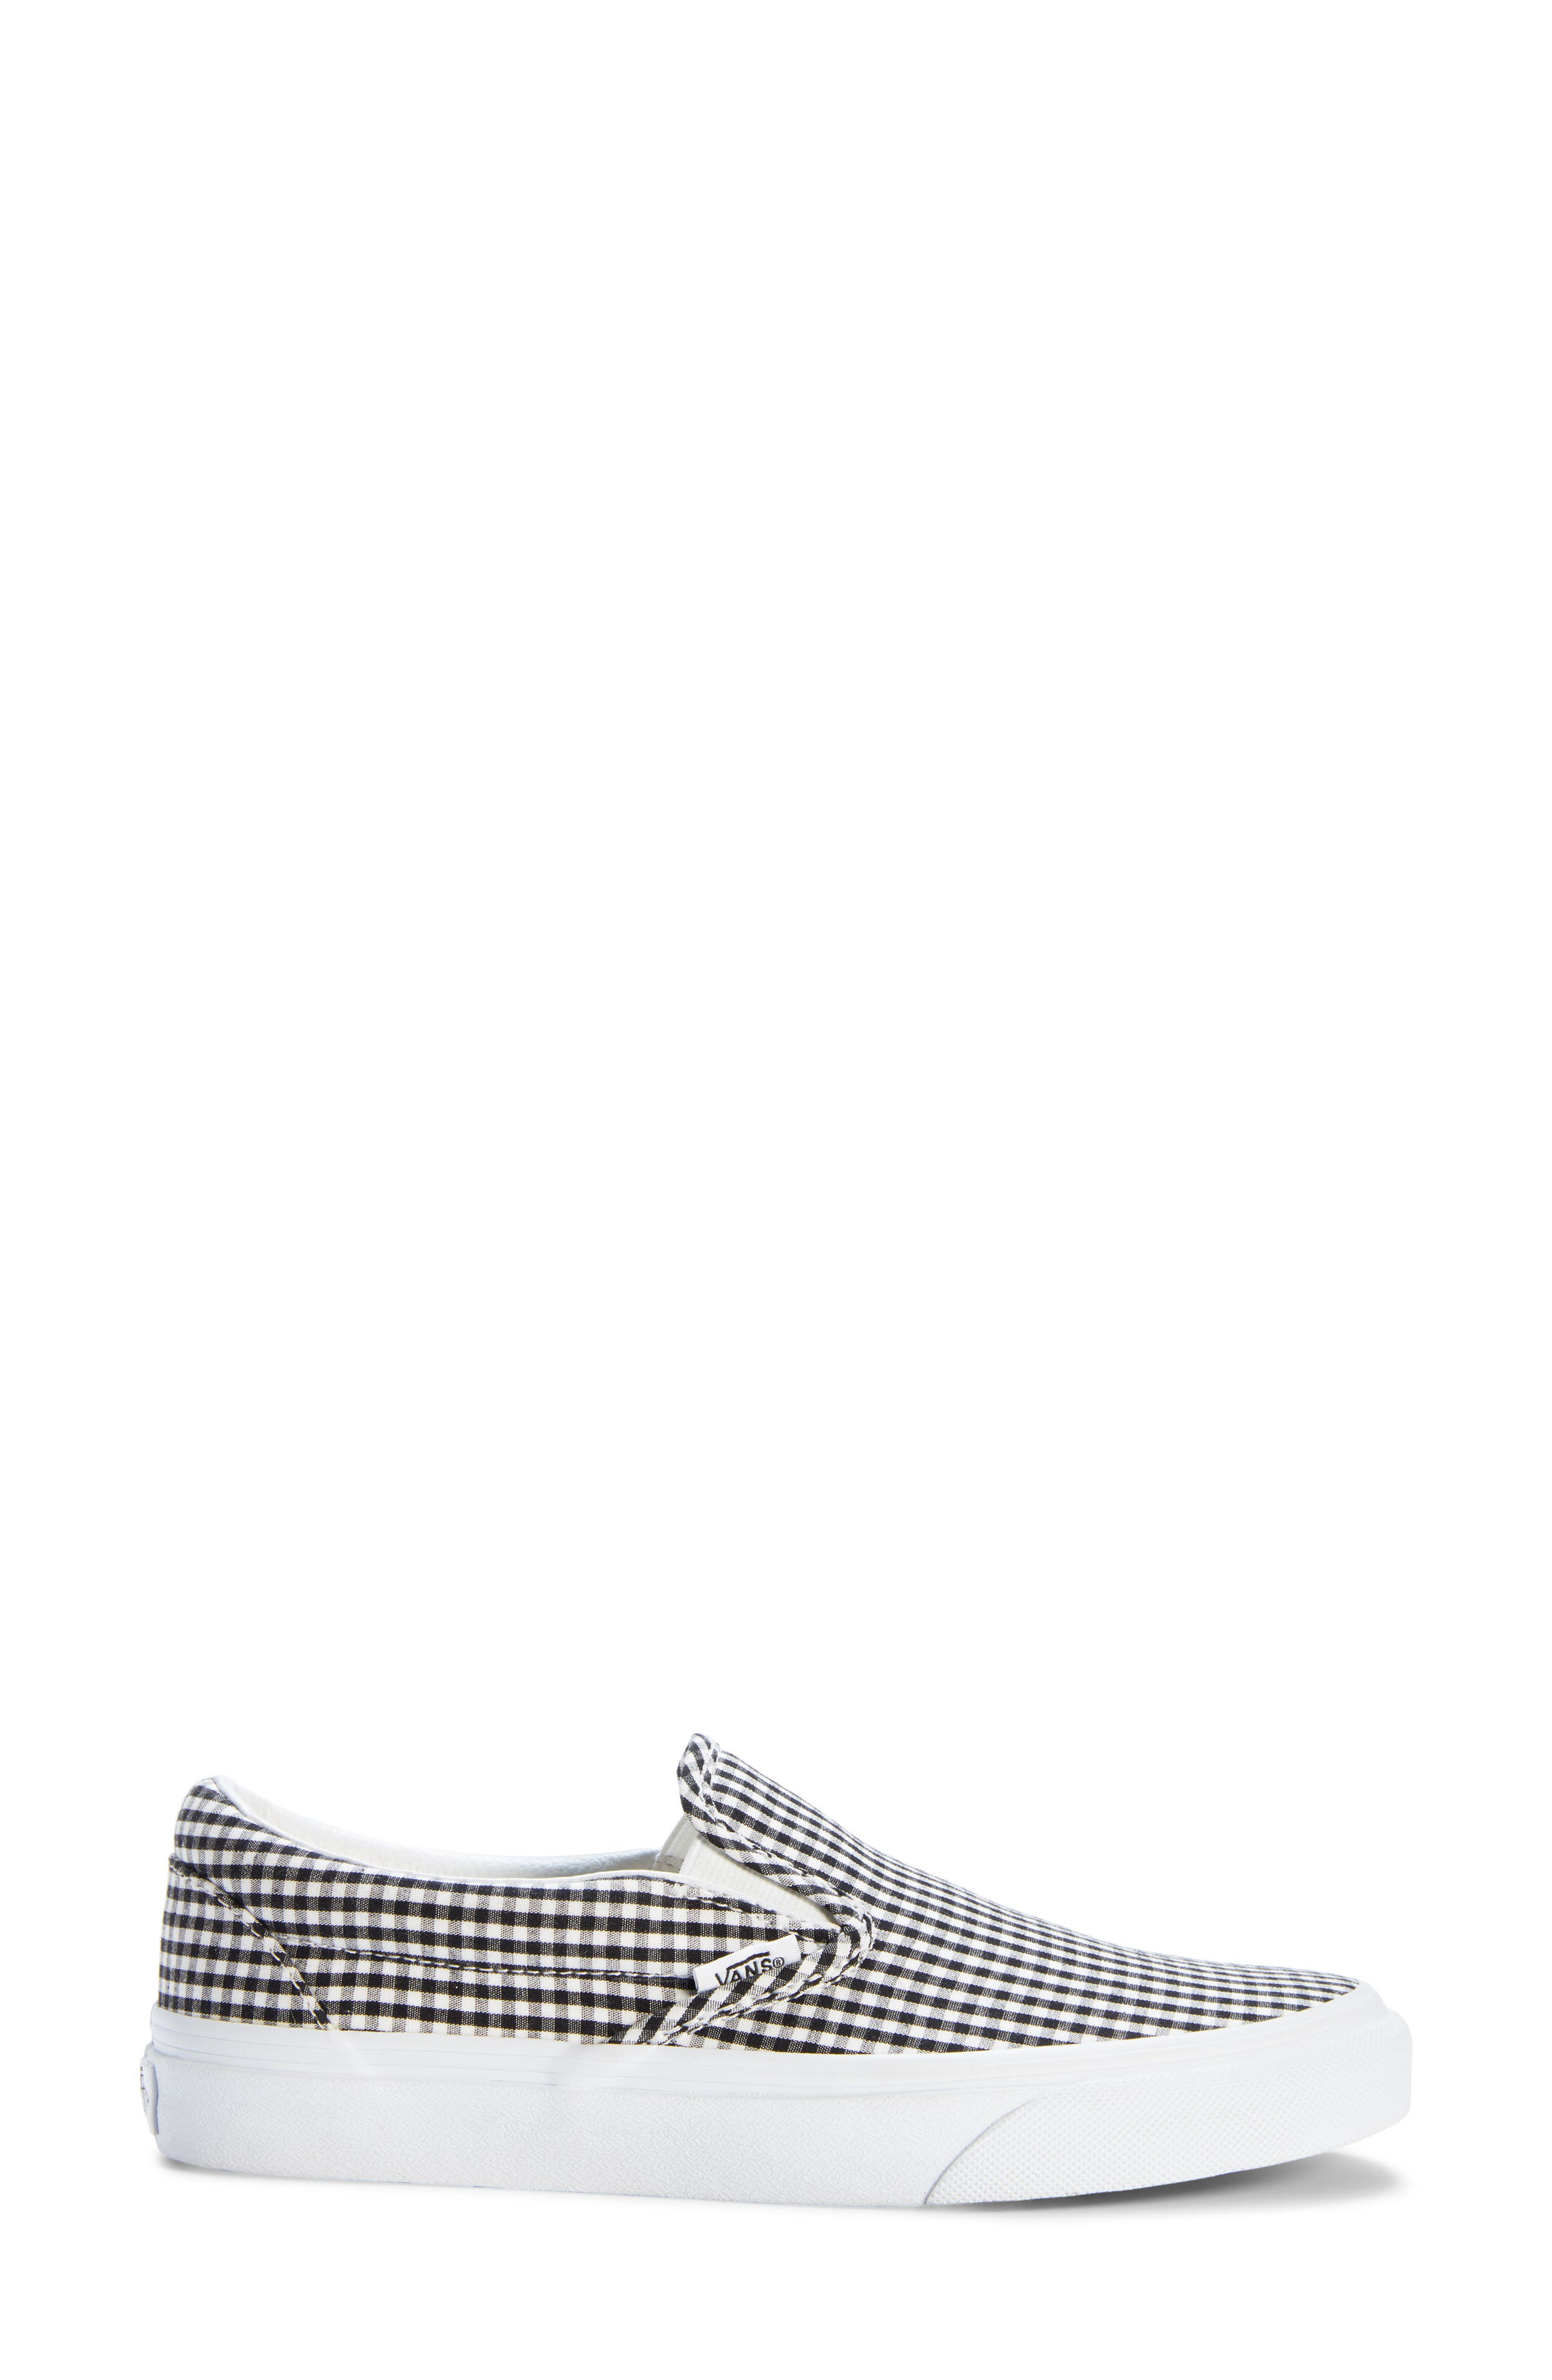 Classic Slip-On Sneaker,                             Alternate thumbnail 3, color,                             Black/ True White Gingham